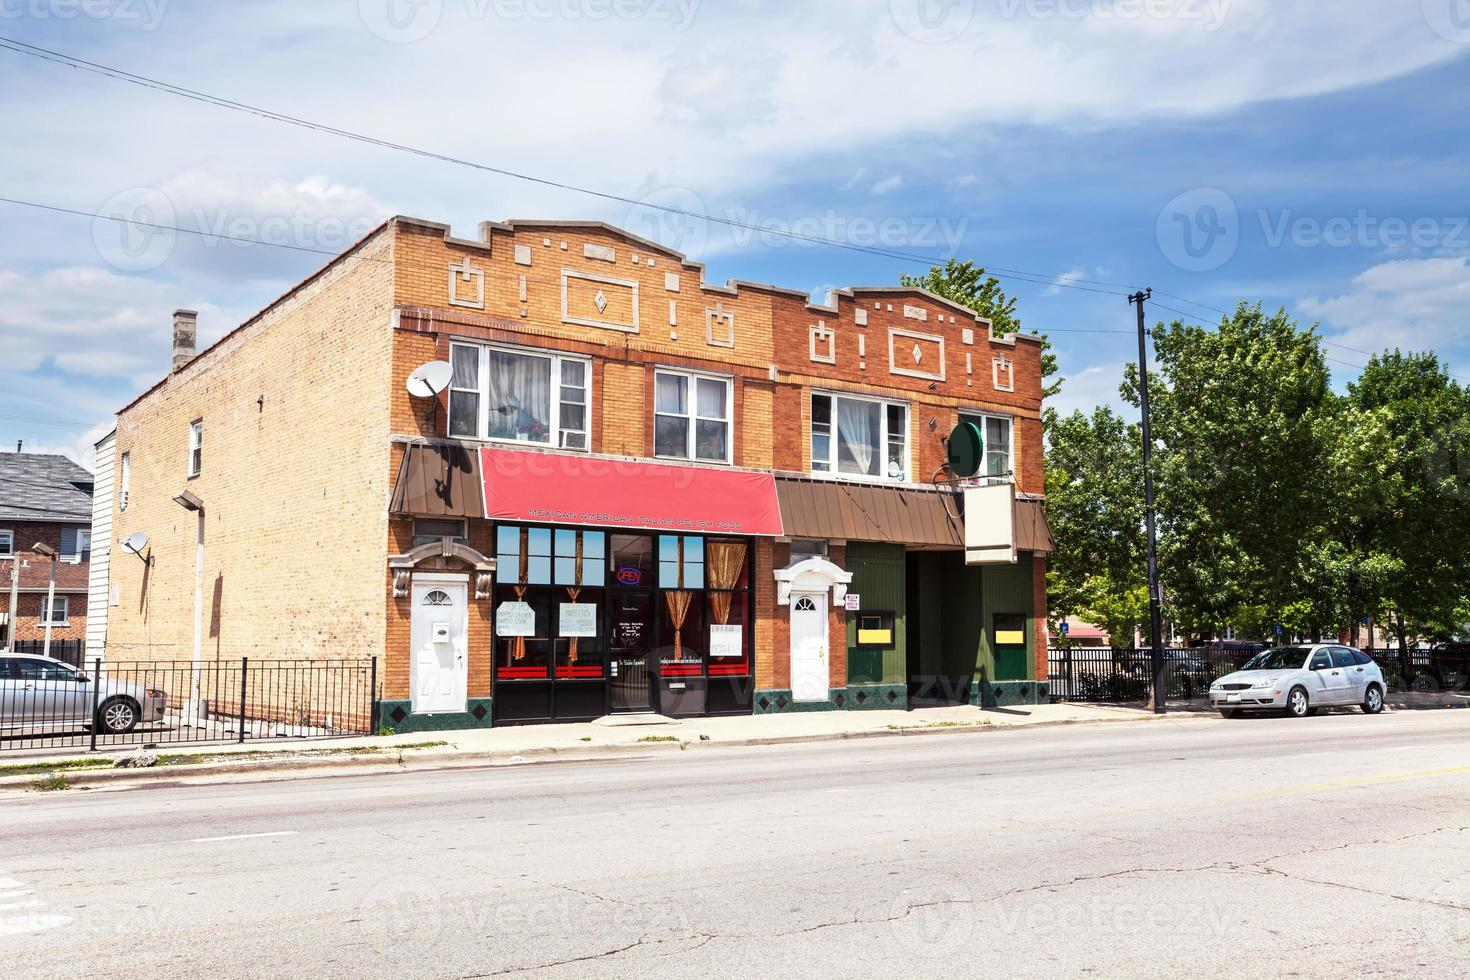 bar e restaurante do bairro em archer heights, chicago foto